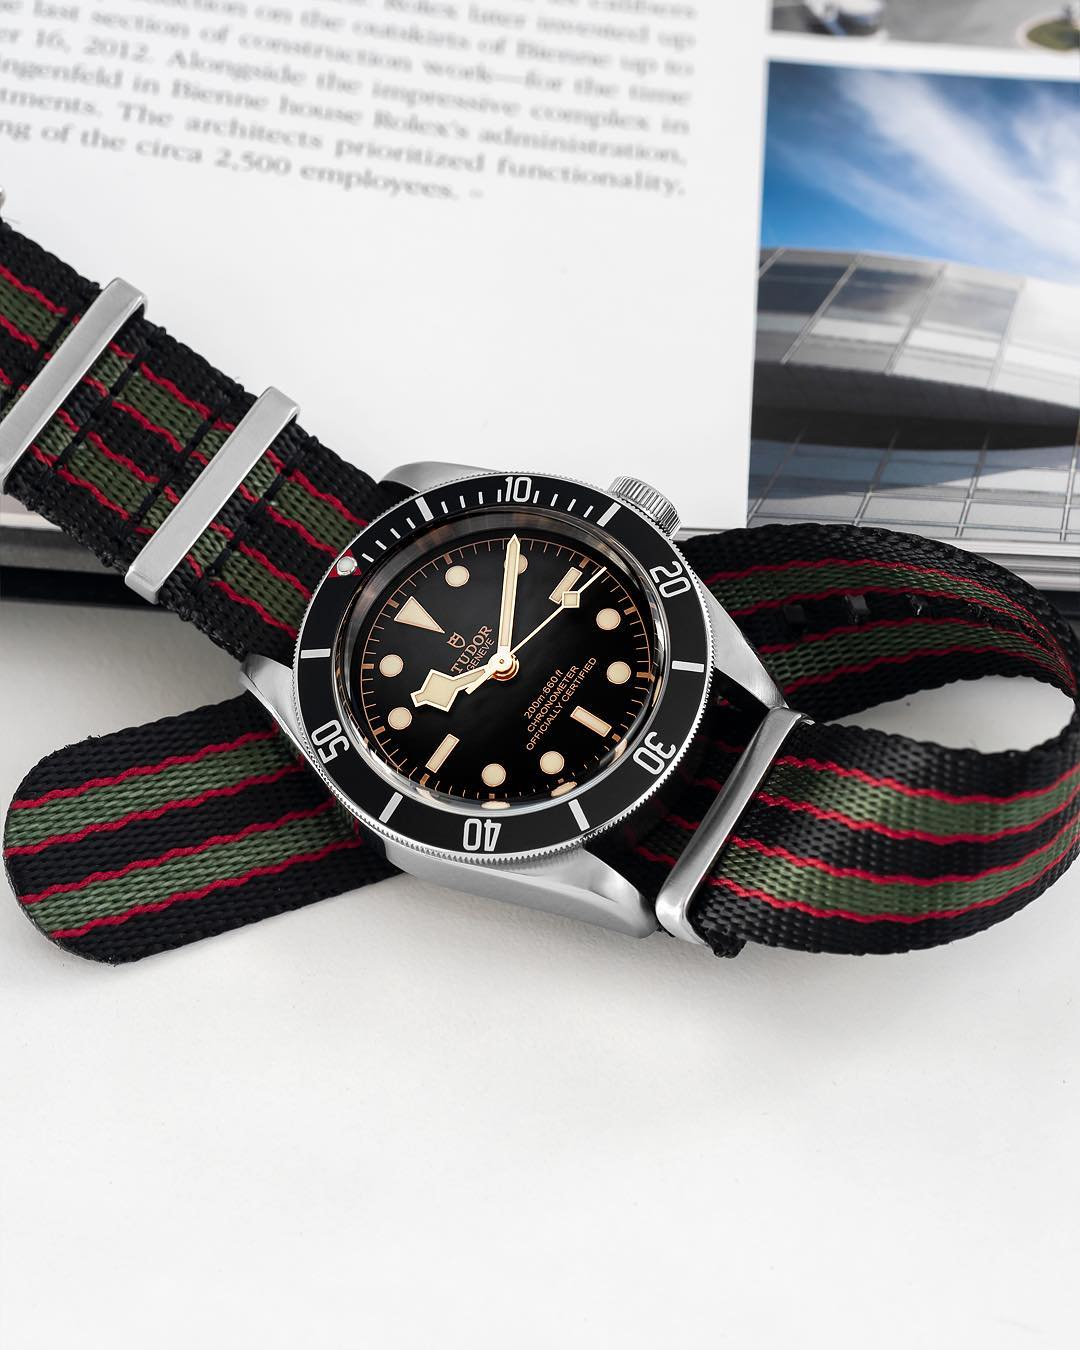 james bond nato strap tudor black bay theblackdial